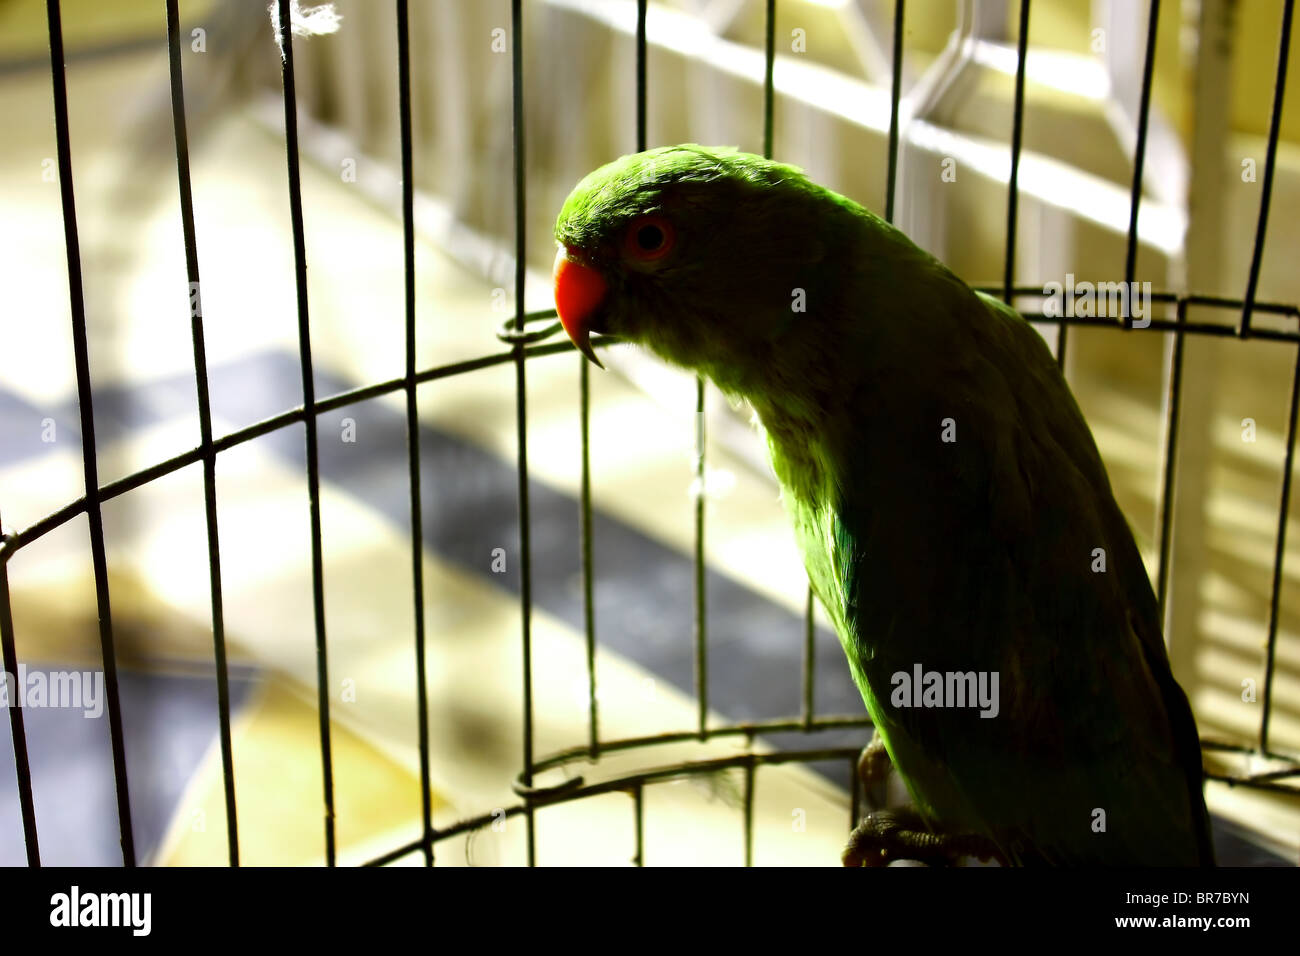 Parrot in Shaddow Stock Photo